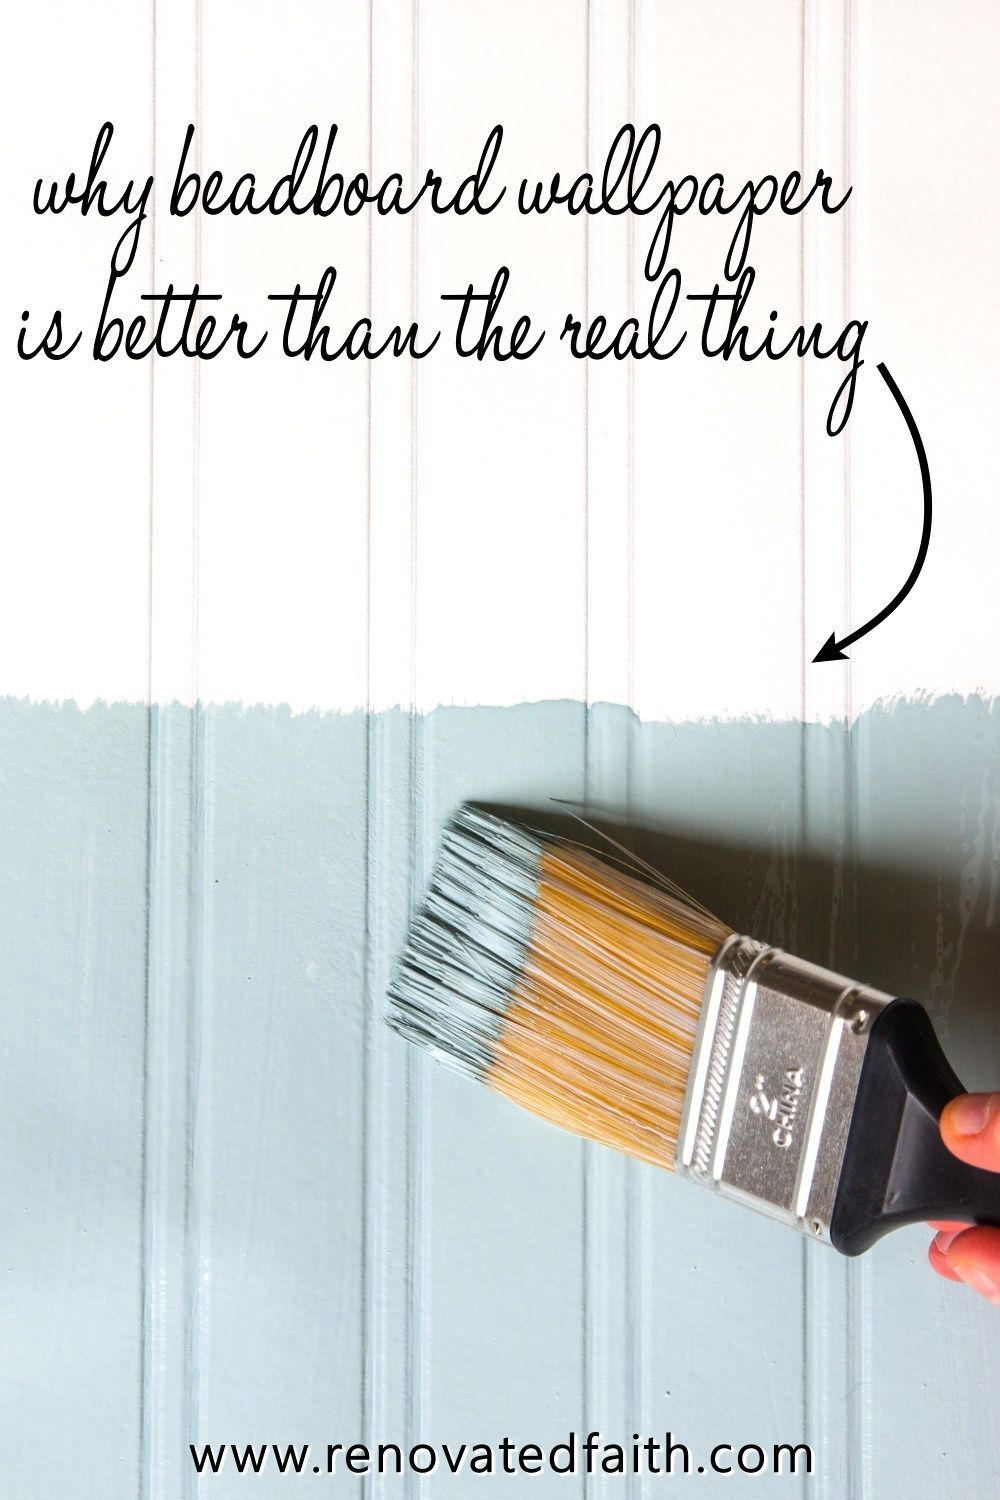 How to Hang Beadboard Wallpaper (Why It's Better than the